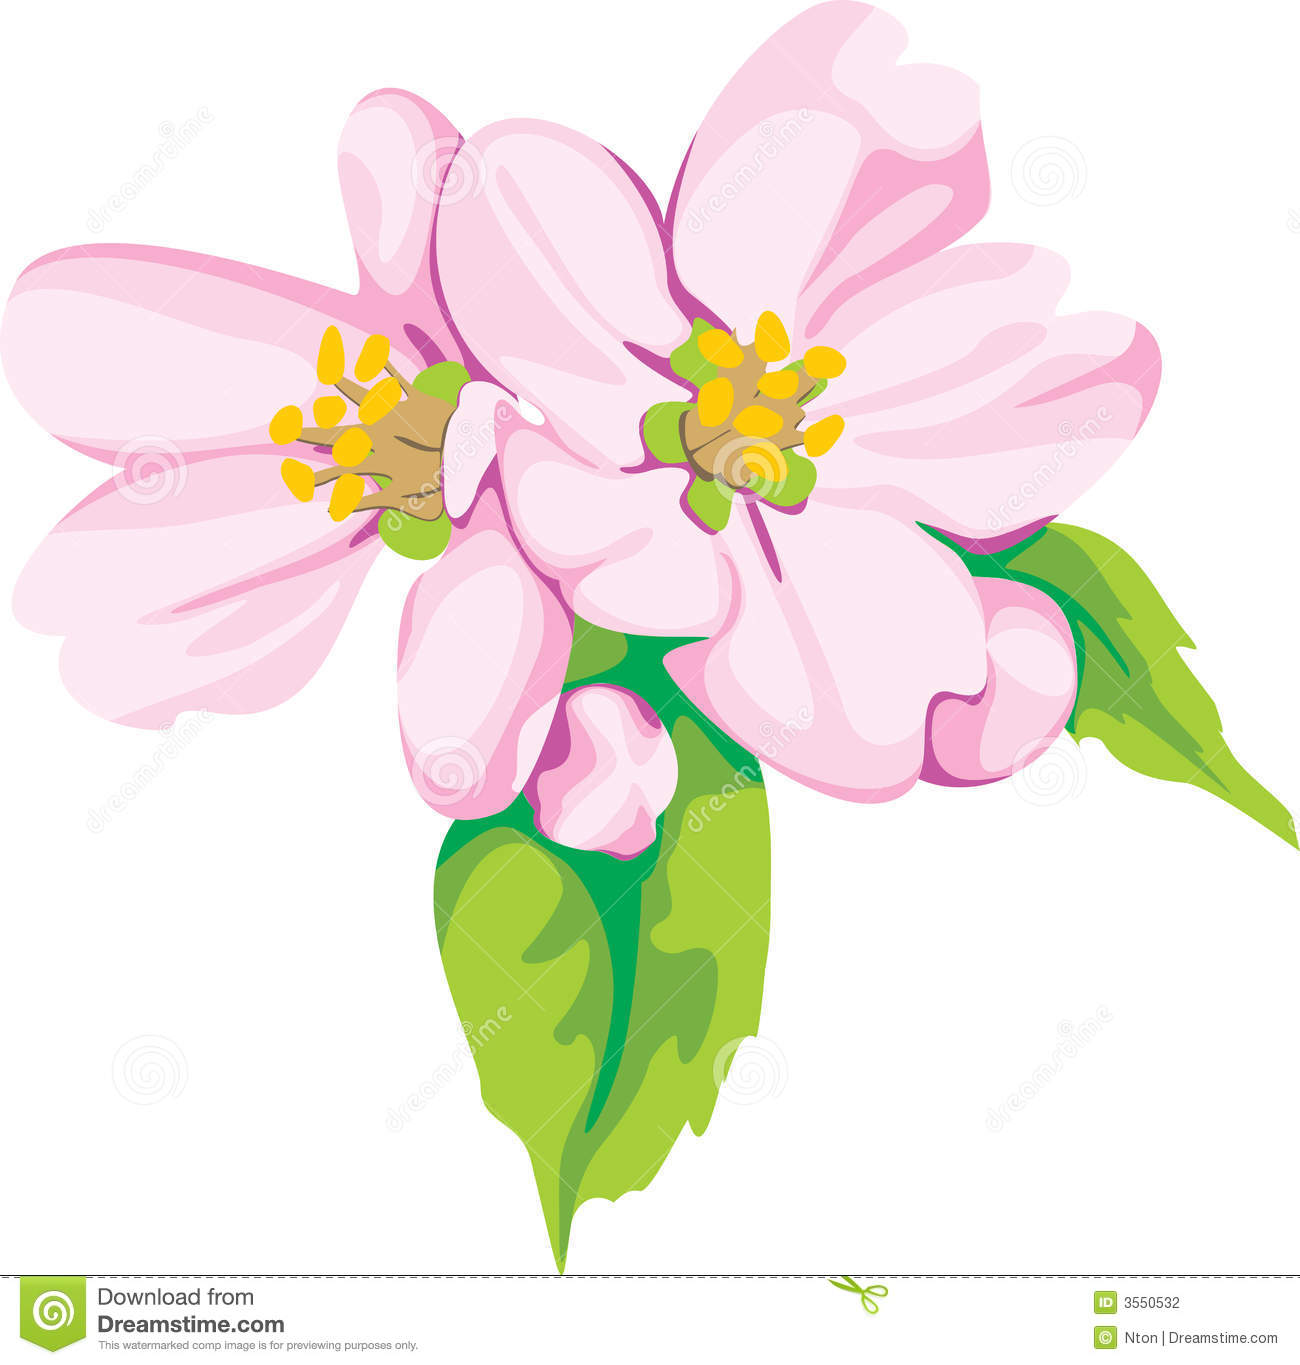 Apples and Flowers Clip Art.